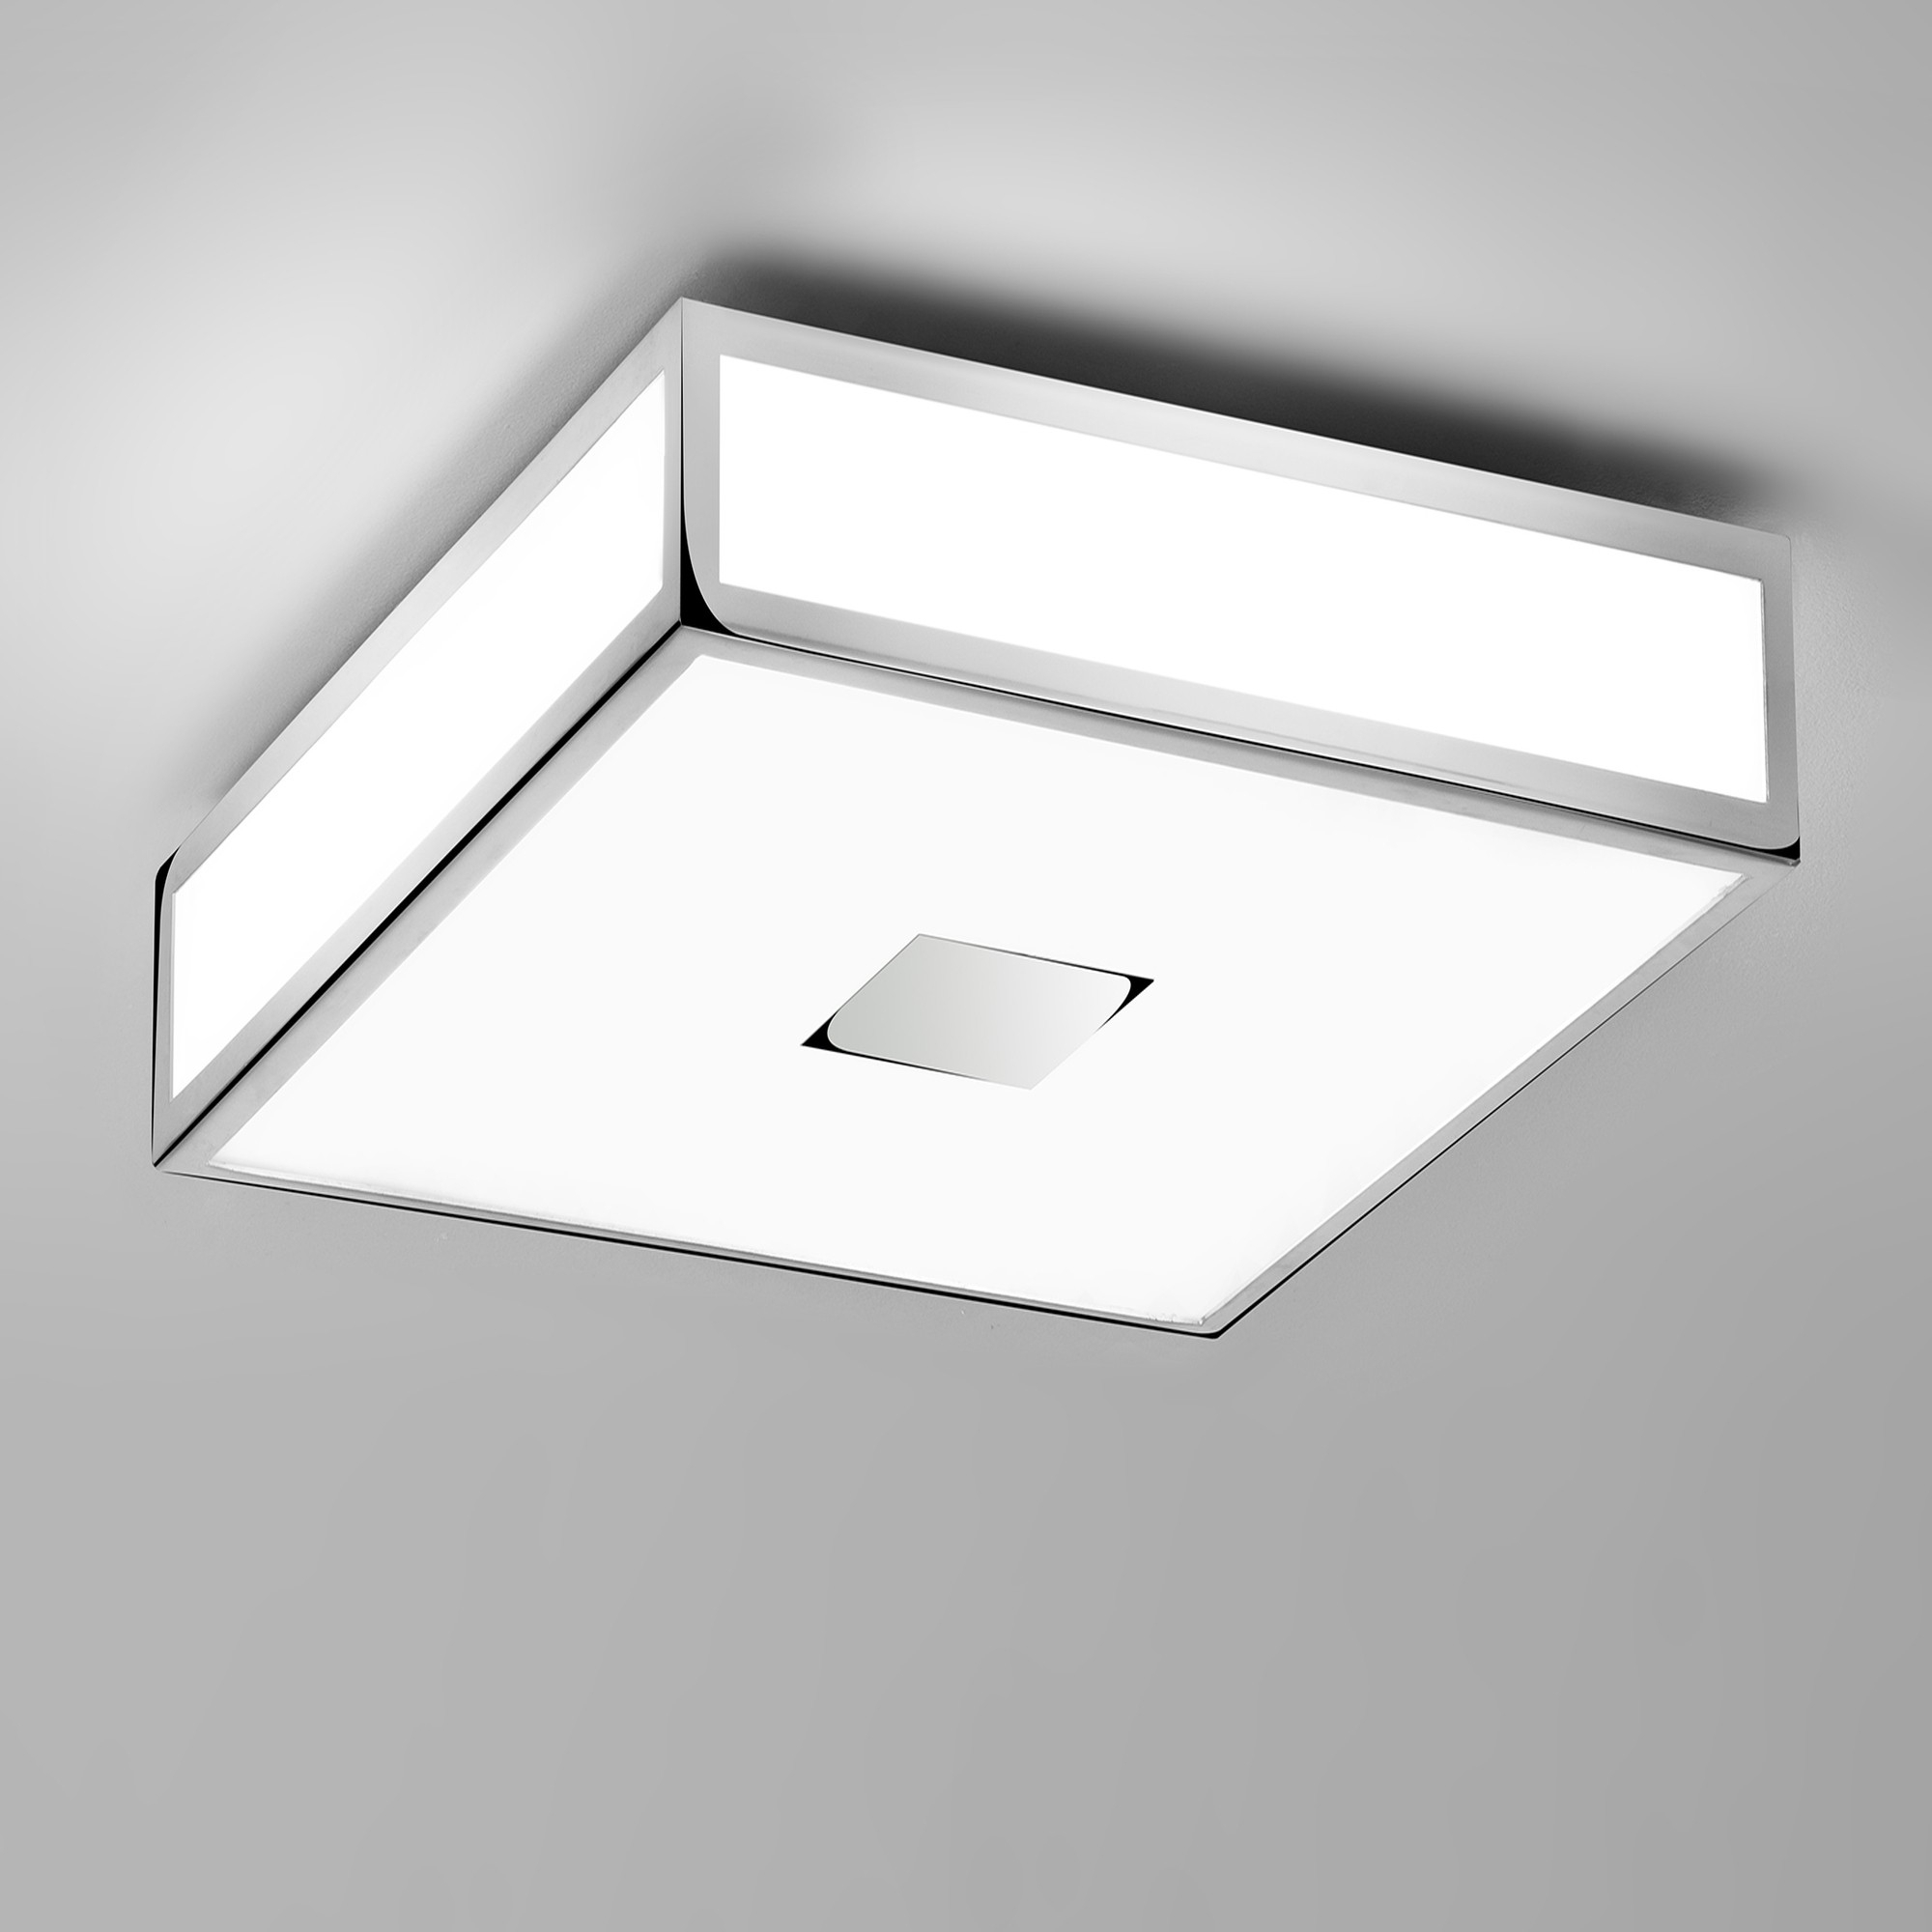 Inspiration about Decorating : Outdoor Ceiling Light For Boats Led 00599Wh Aaa World Intended For Modern Outdoor Ceiling Lights (#13 of 15)